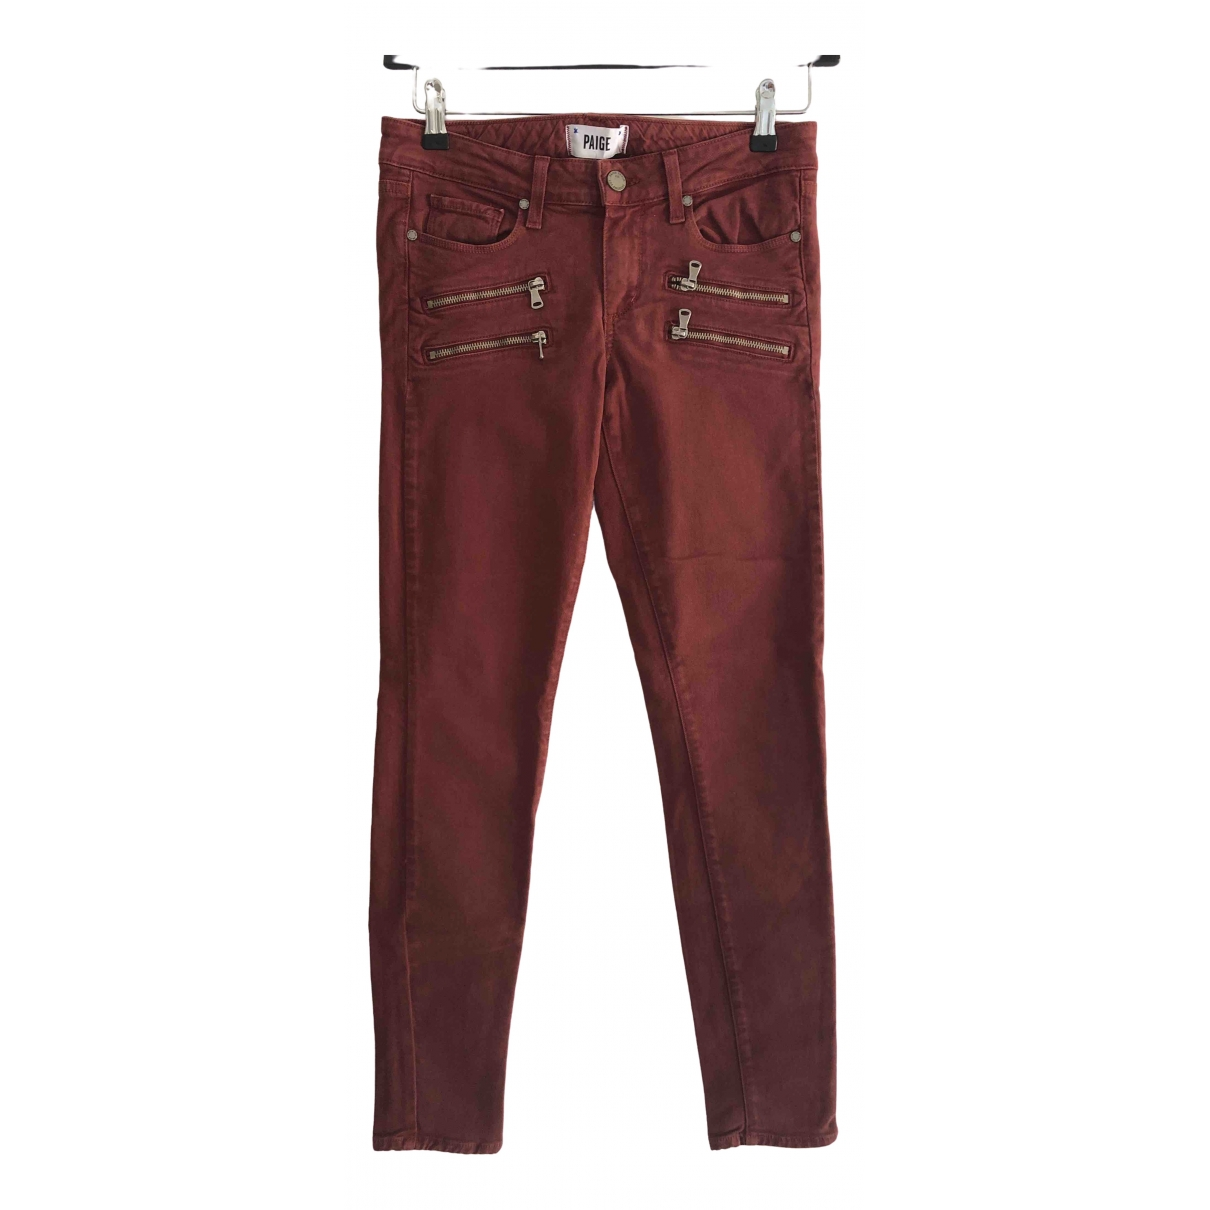 Paige Jeans \N Red Cotton Trousers for Women S International